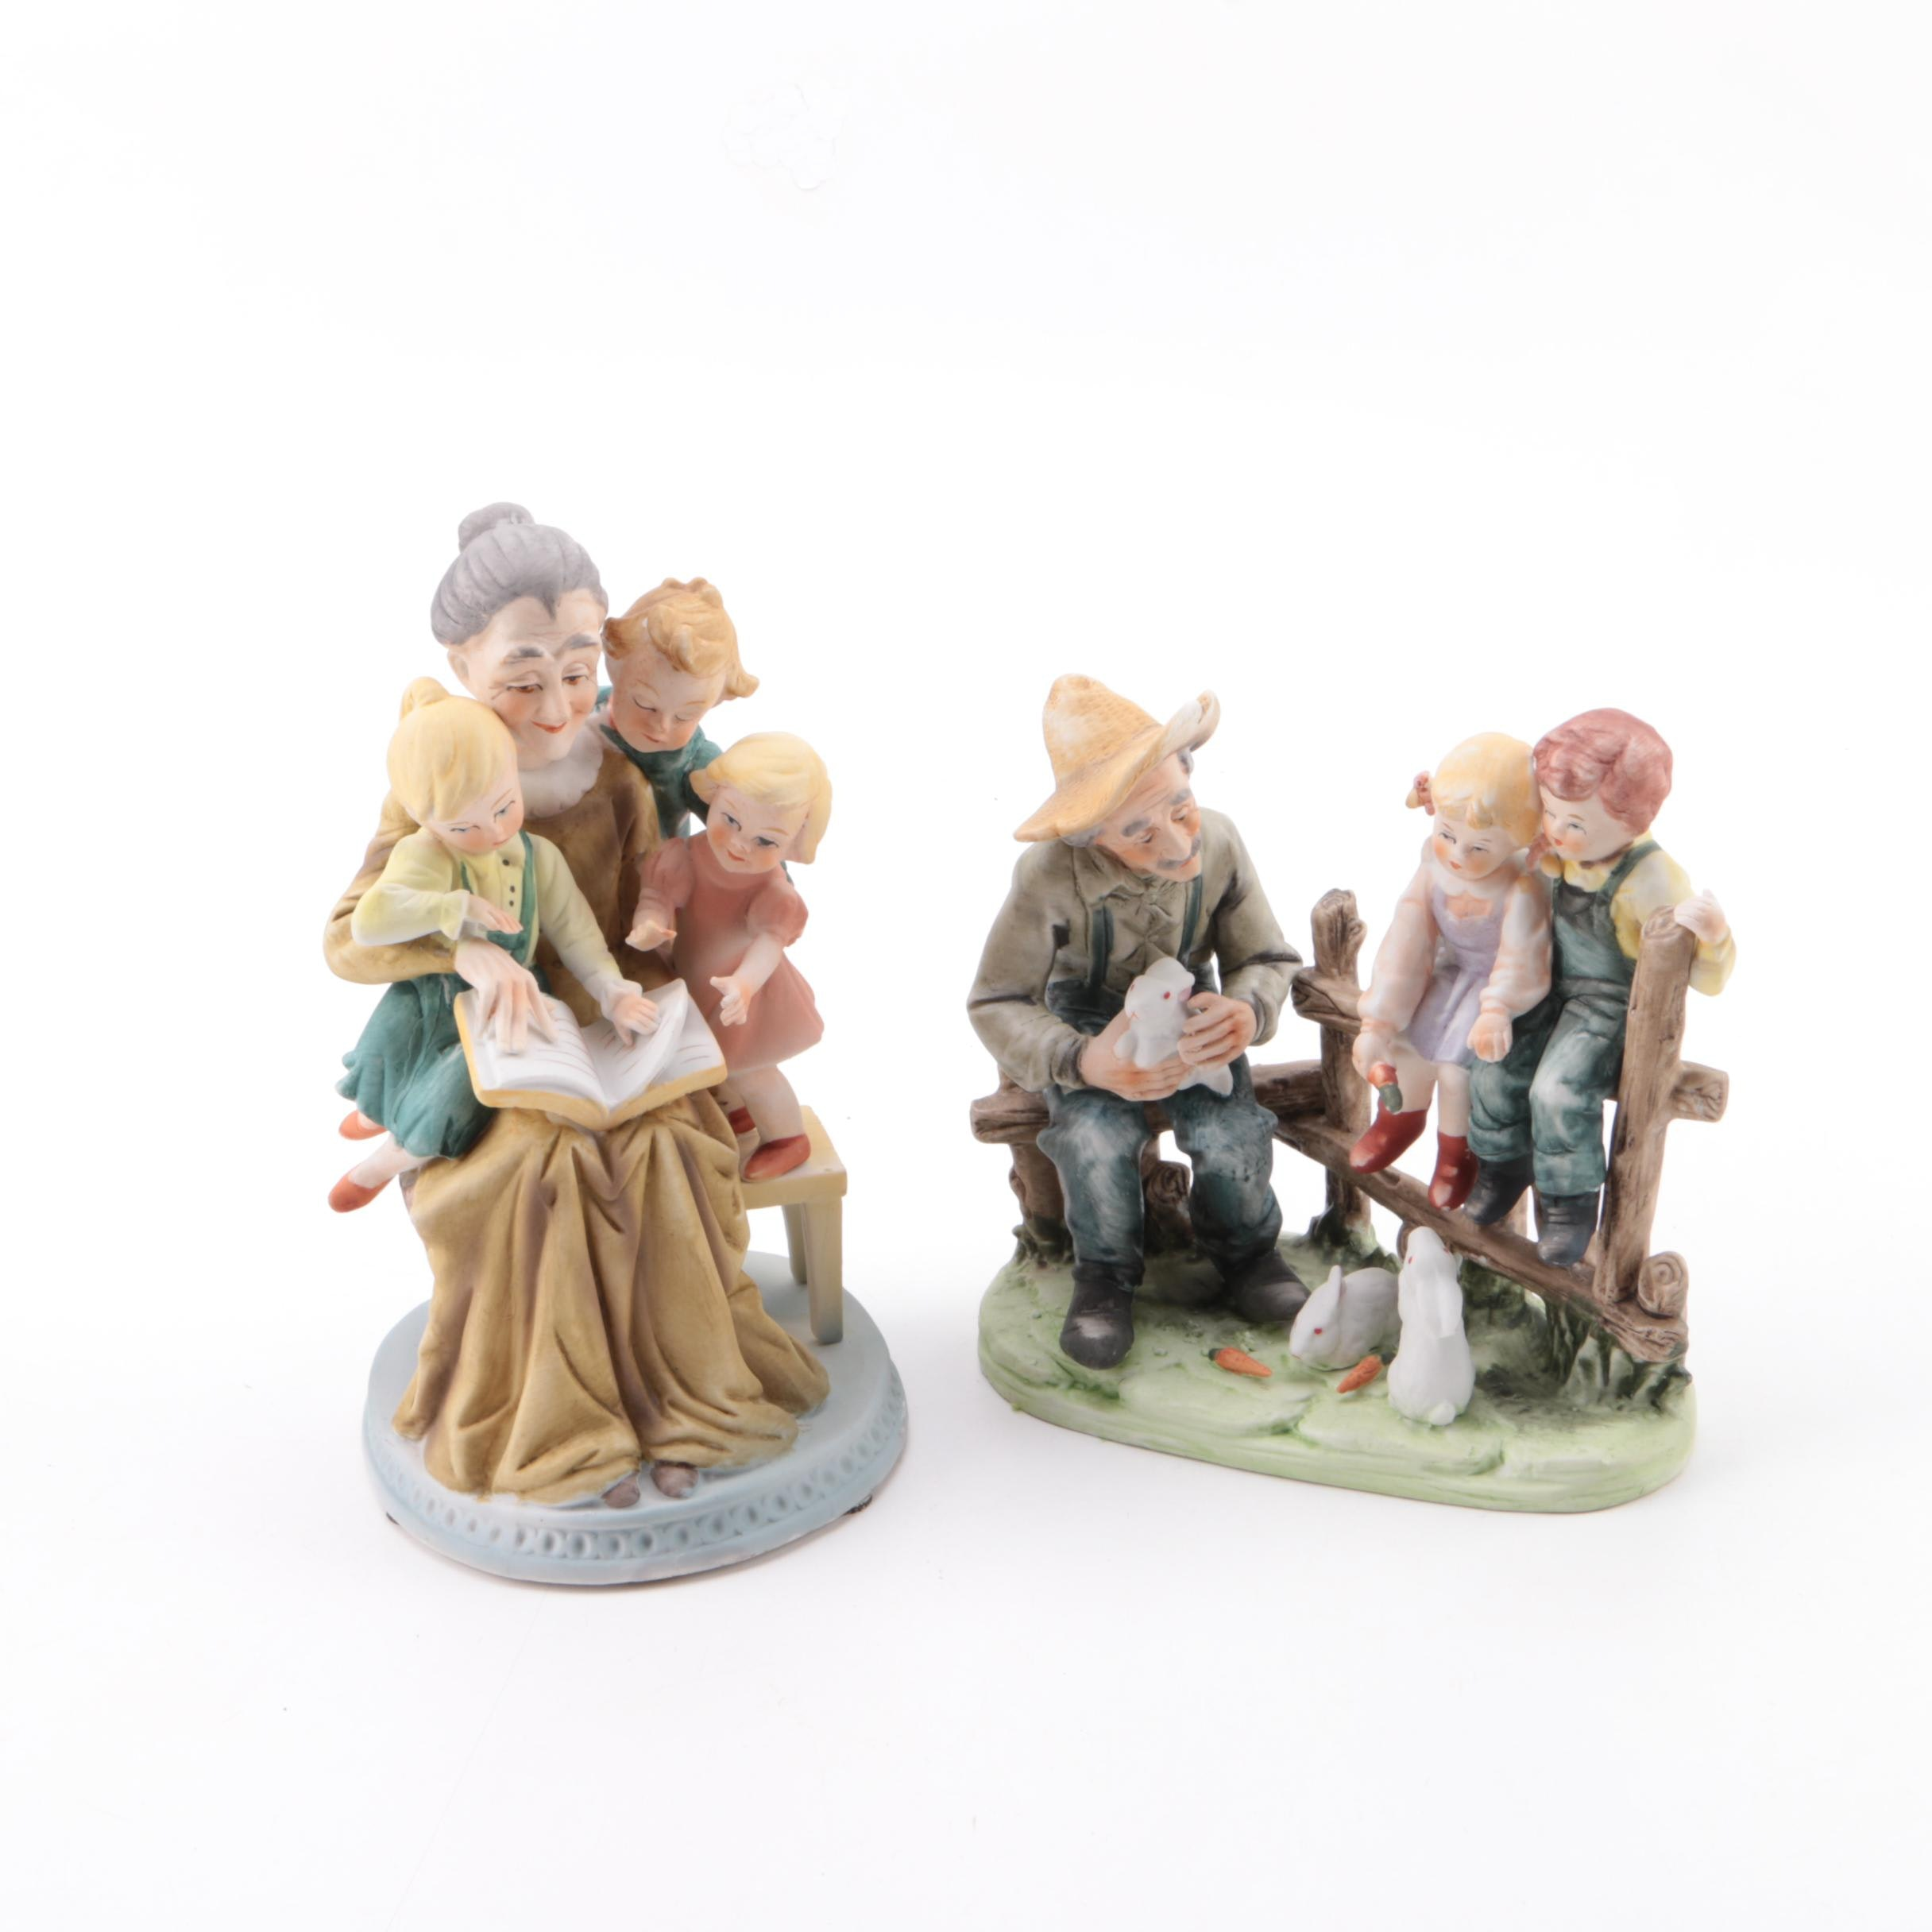 Figurines Depicting the Interacting of Generations